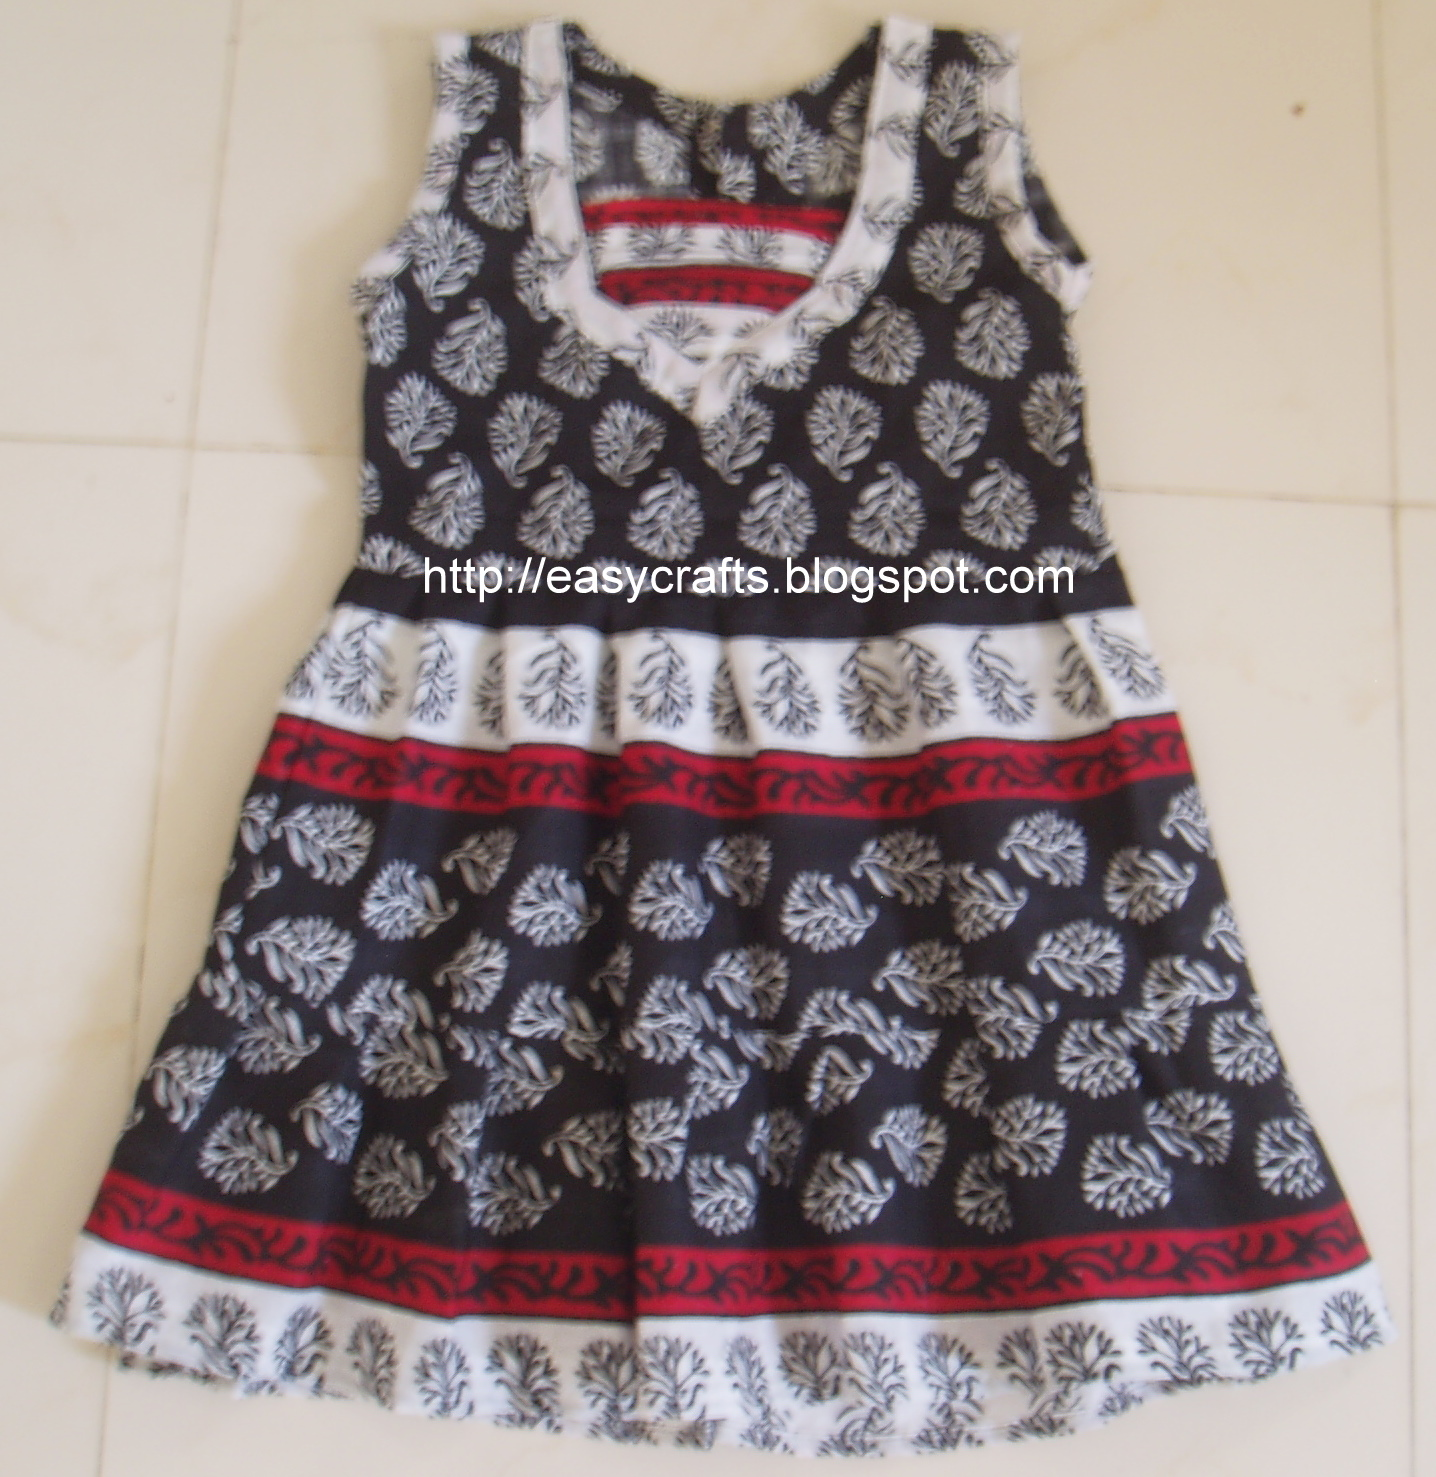 Baby Girls Frocks http://easycrafts.blogspot.com/2011/03/girl-baby-frock_28.html